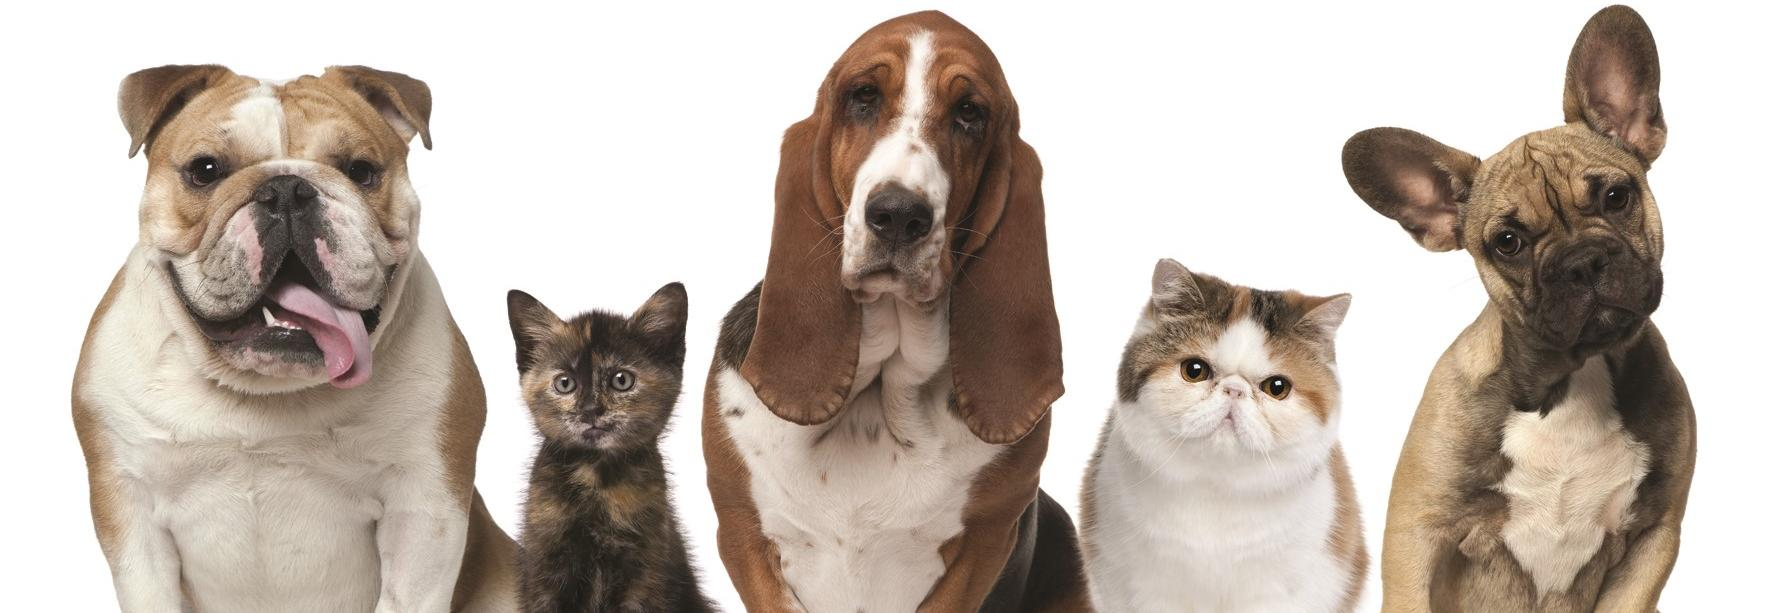 save money on pet care with Dr. Kathy